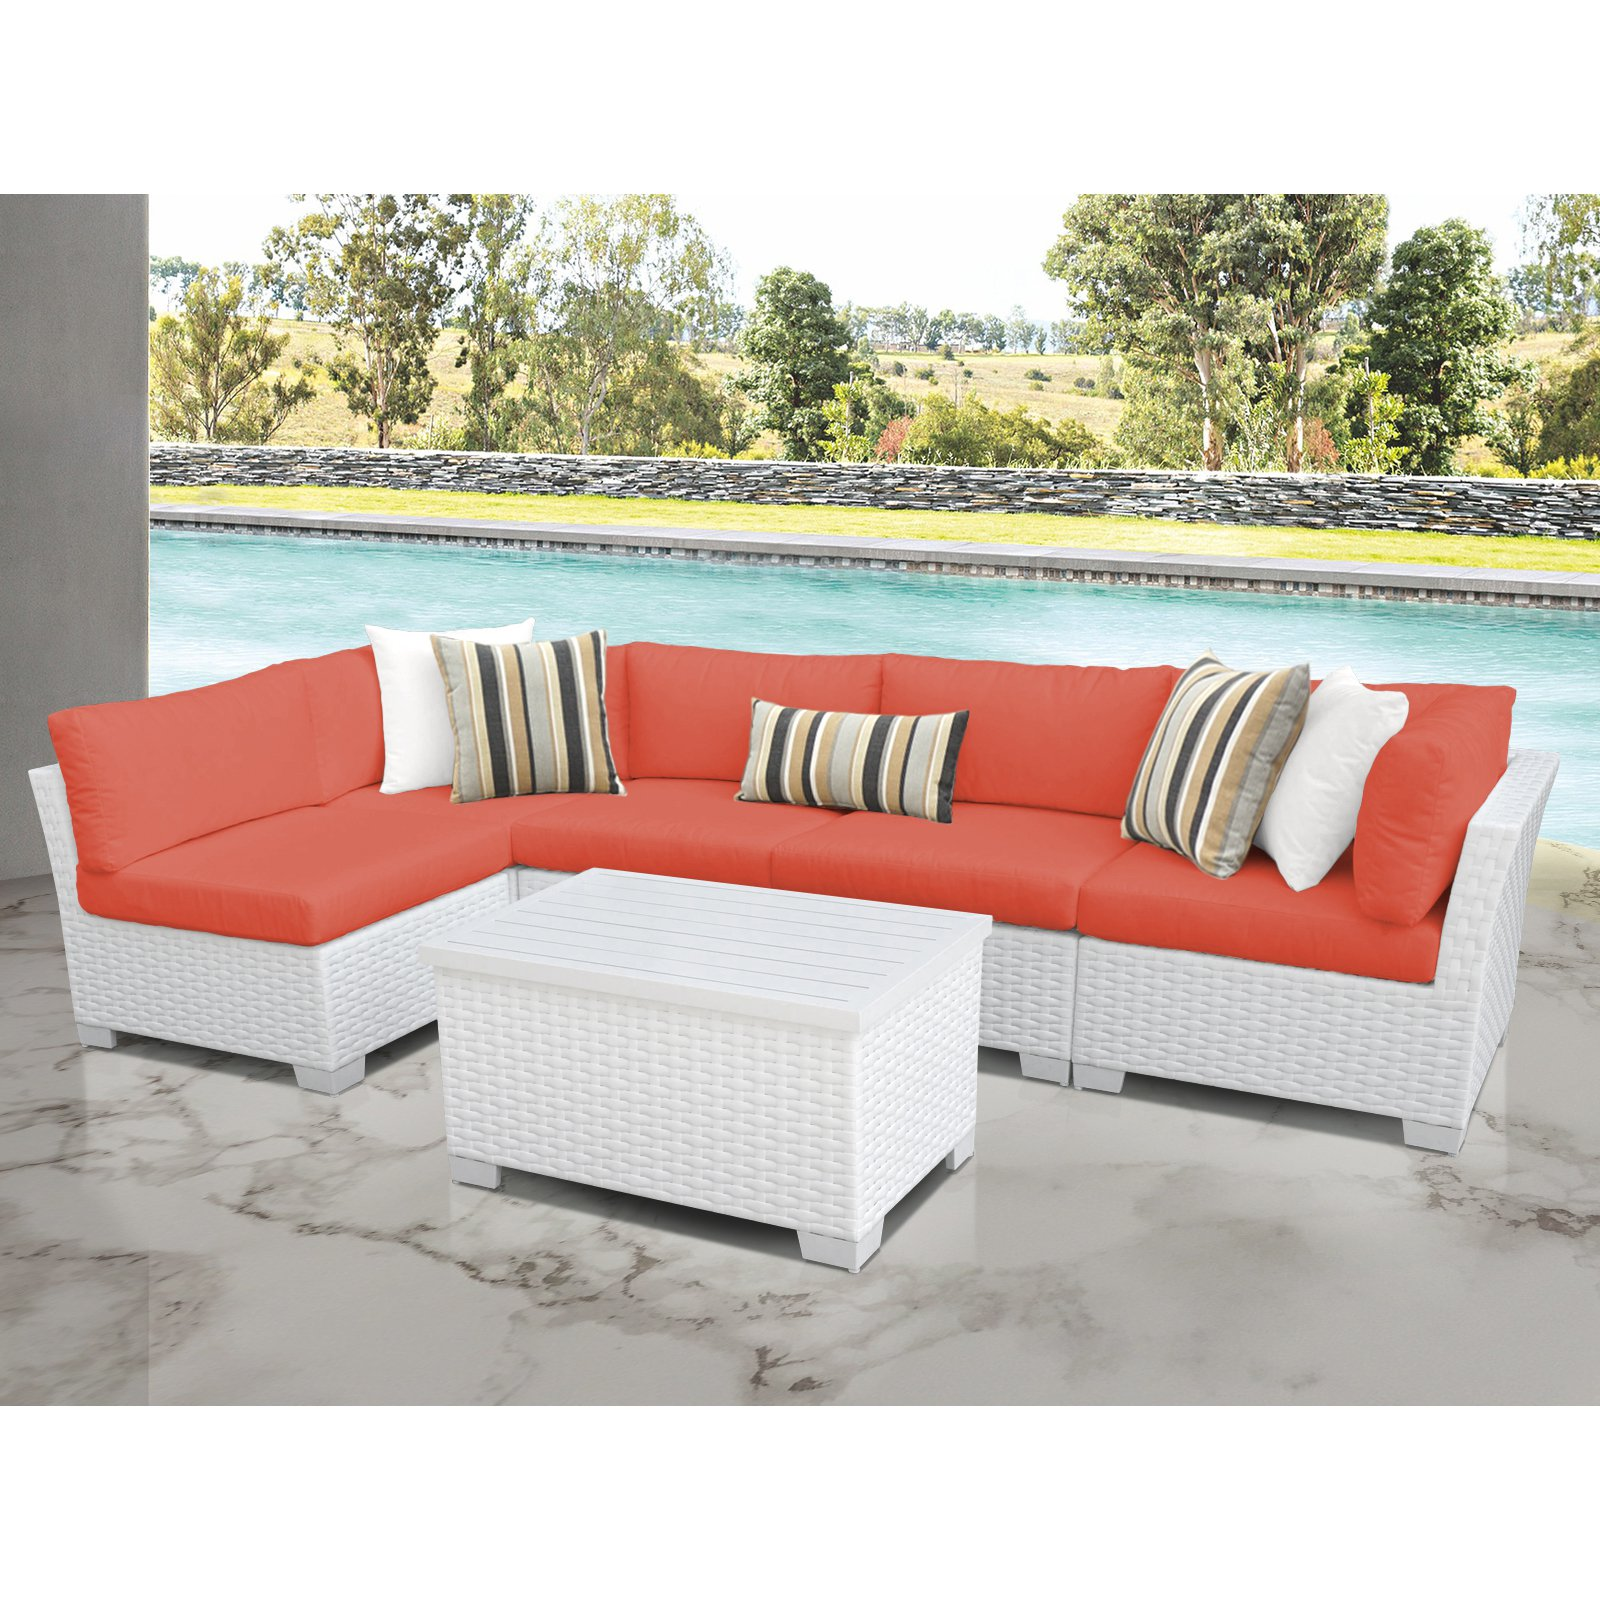 TK Classics Monaco 6-Piece Outdoor Wicker Patio Conversation Set